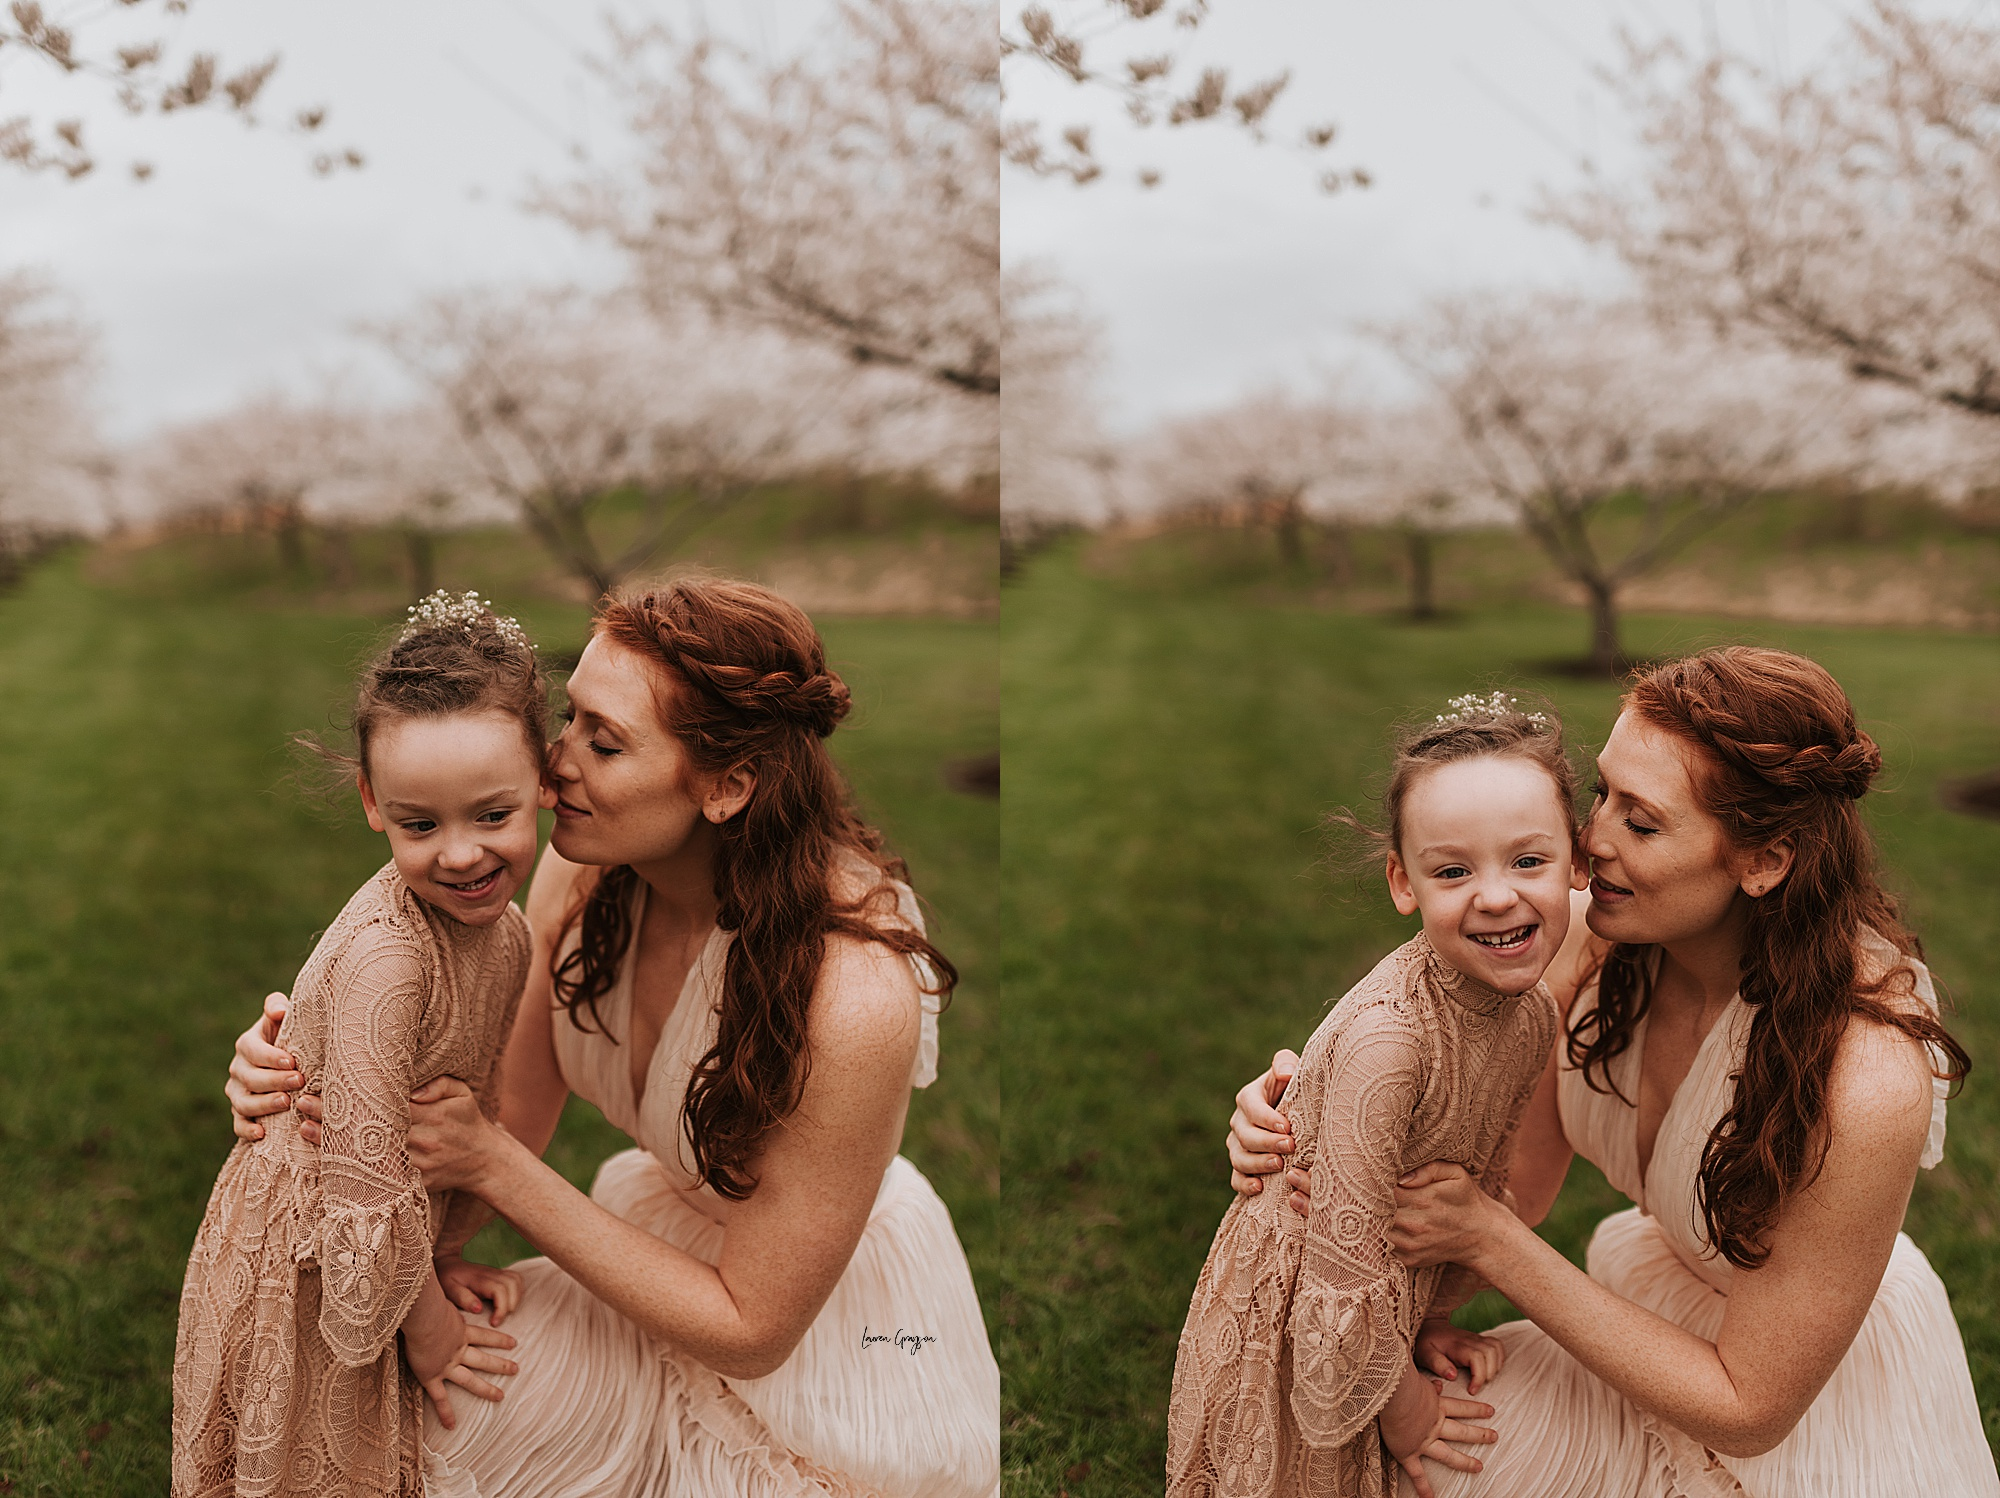 lauren-grayson-photography-cleveland-ohio-motherhood-family-child-photo-session-cherry-blossoms_0018.jpg